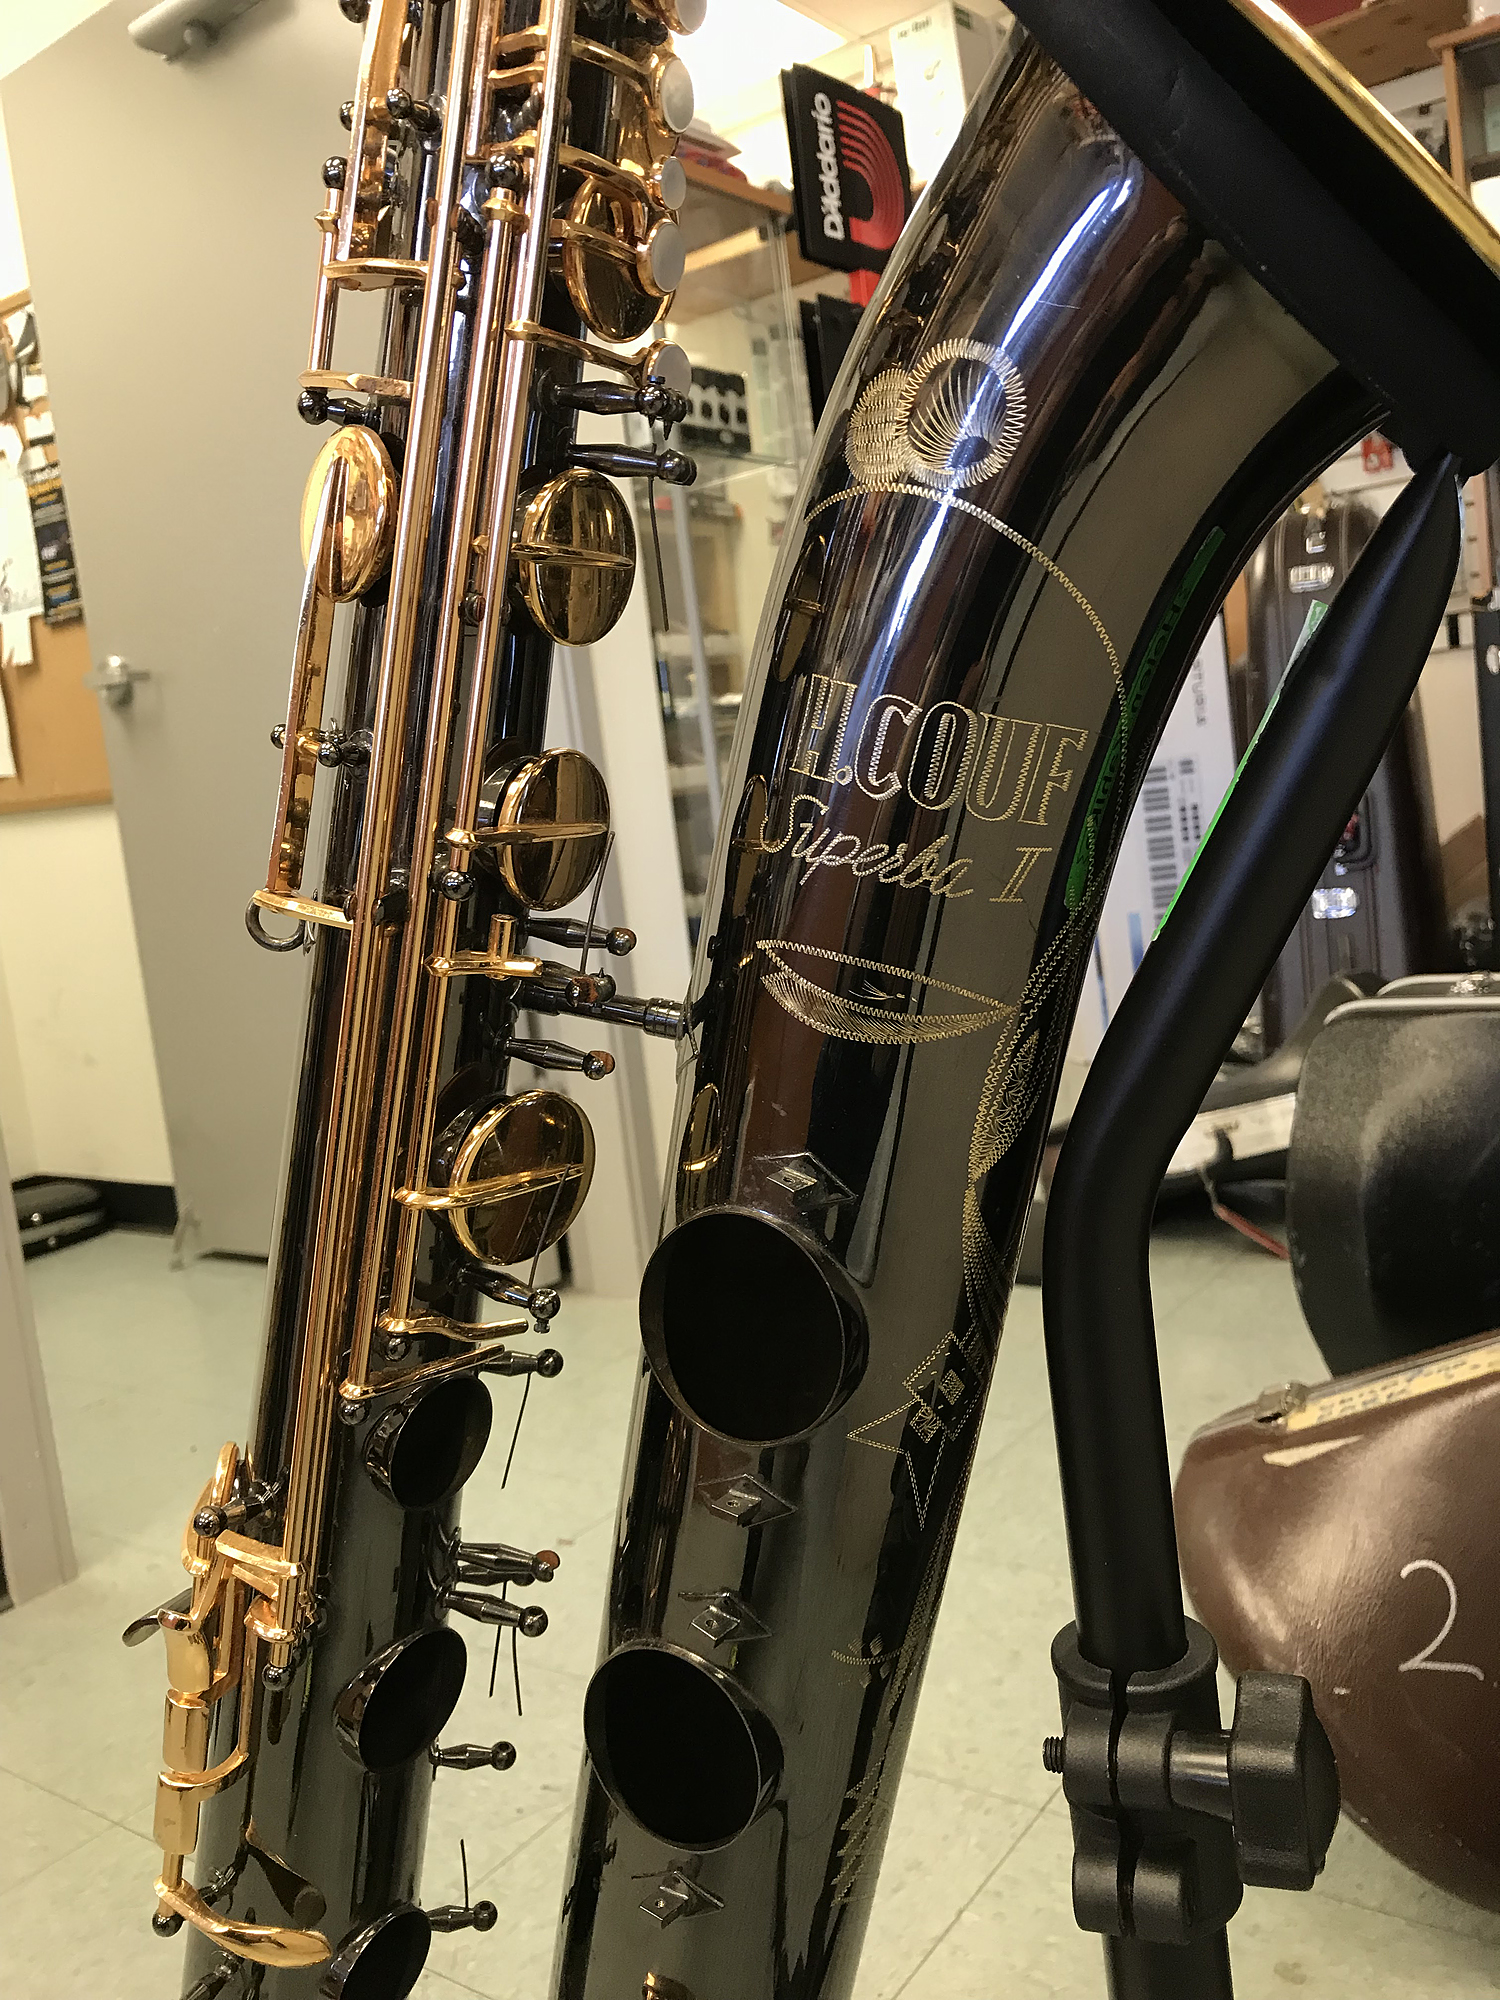 Black Gold Couf Superba II baritone sax, bari sax, H. Couf sax, bell engraving, black nickel plated sax, gold plated keys, vintage German sax